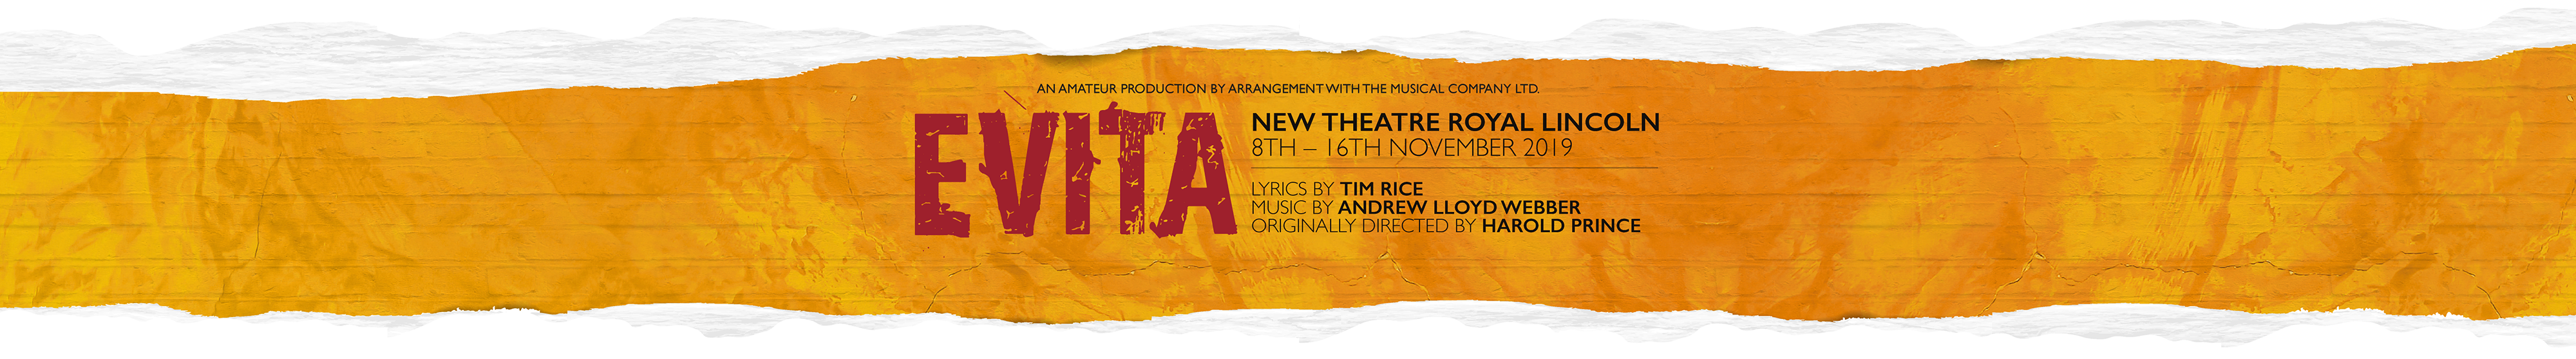 CAODS Presents EVITA at The New Theatre Royal Lincoln in 2018